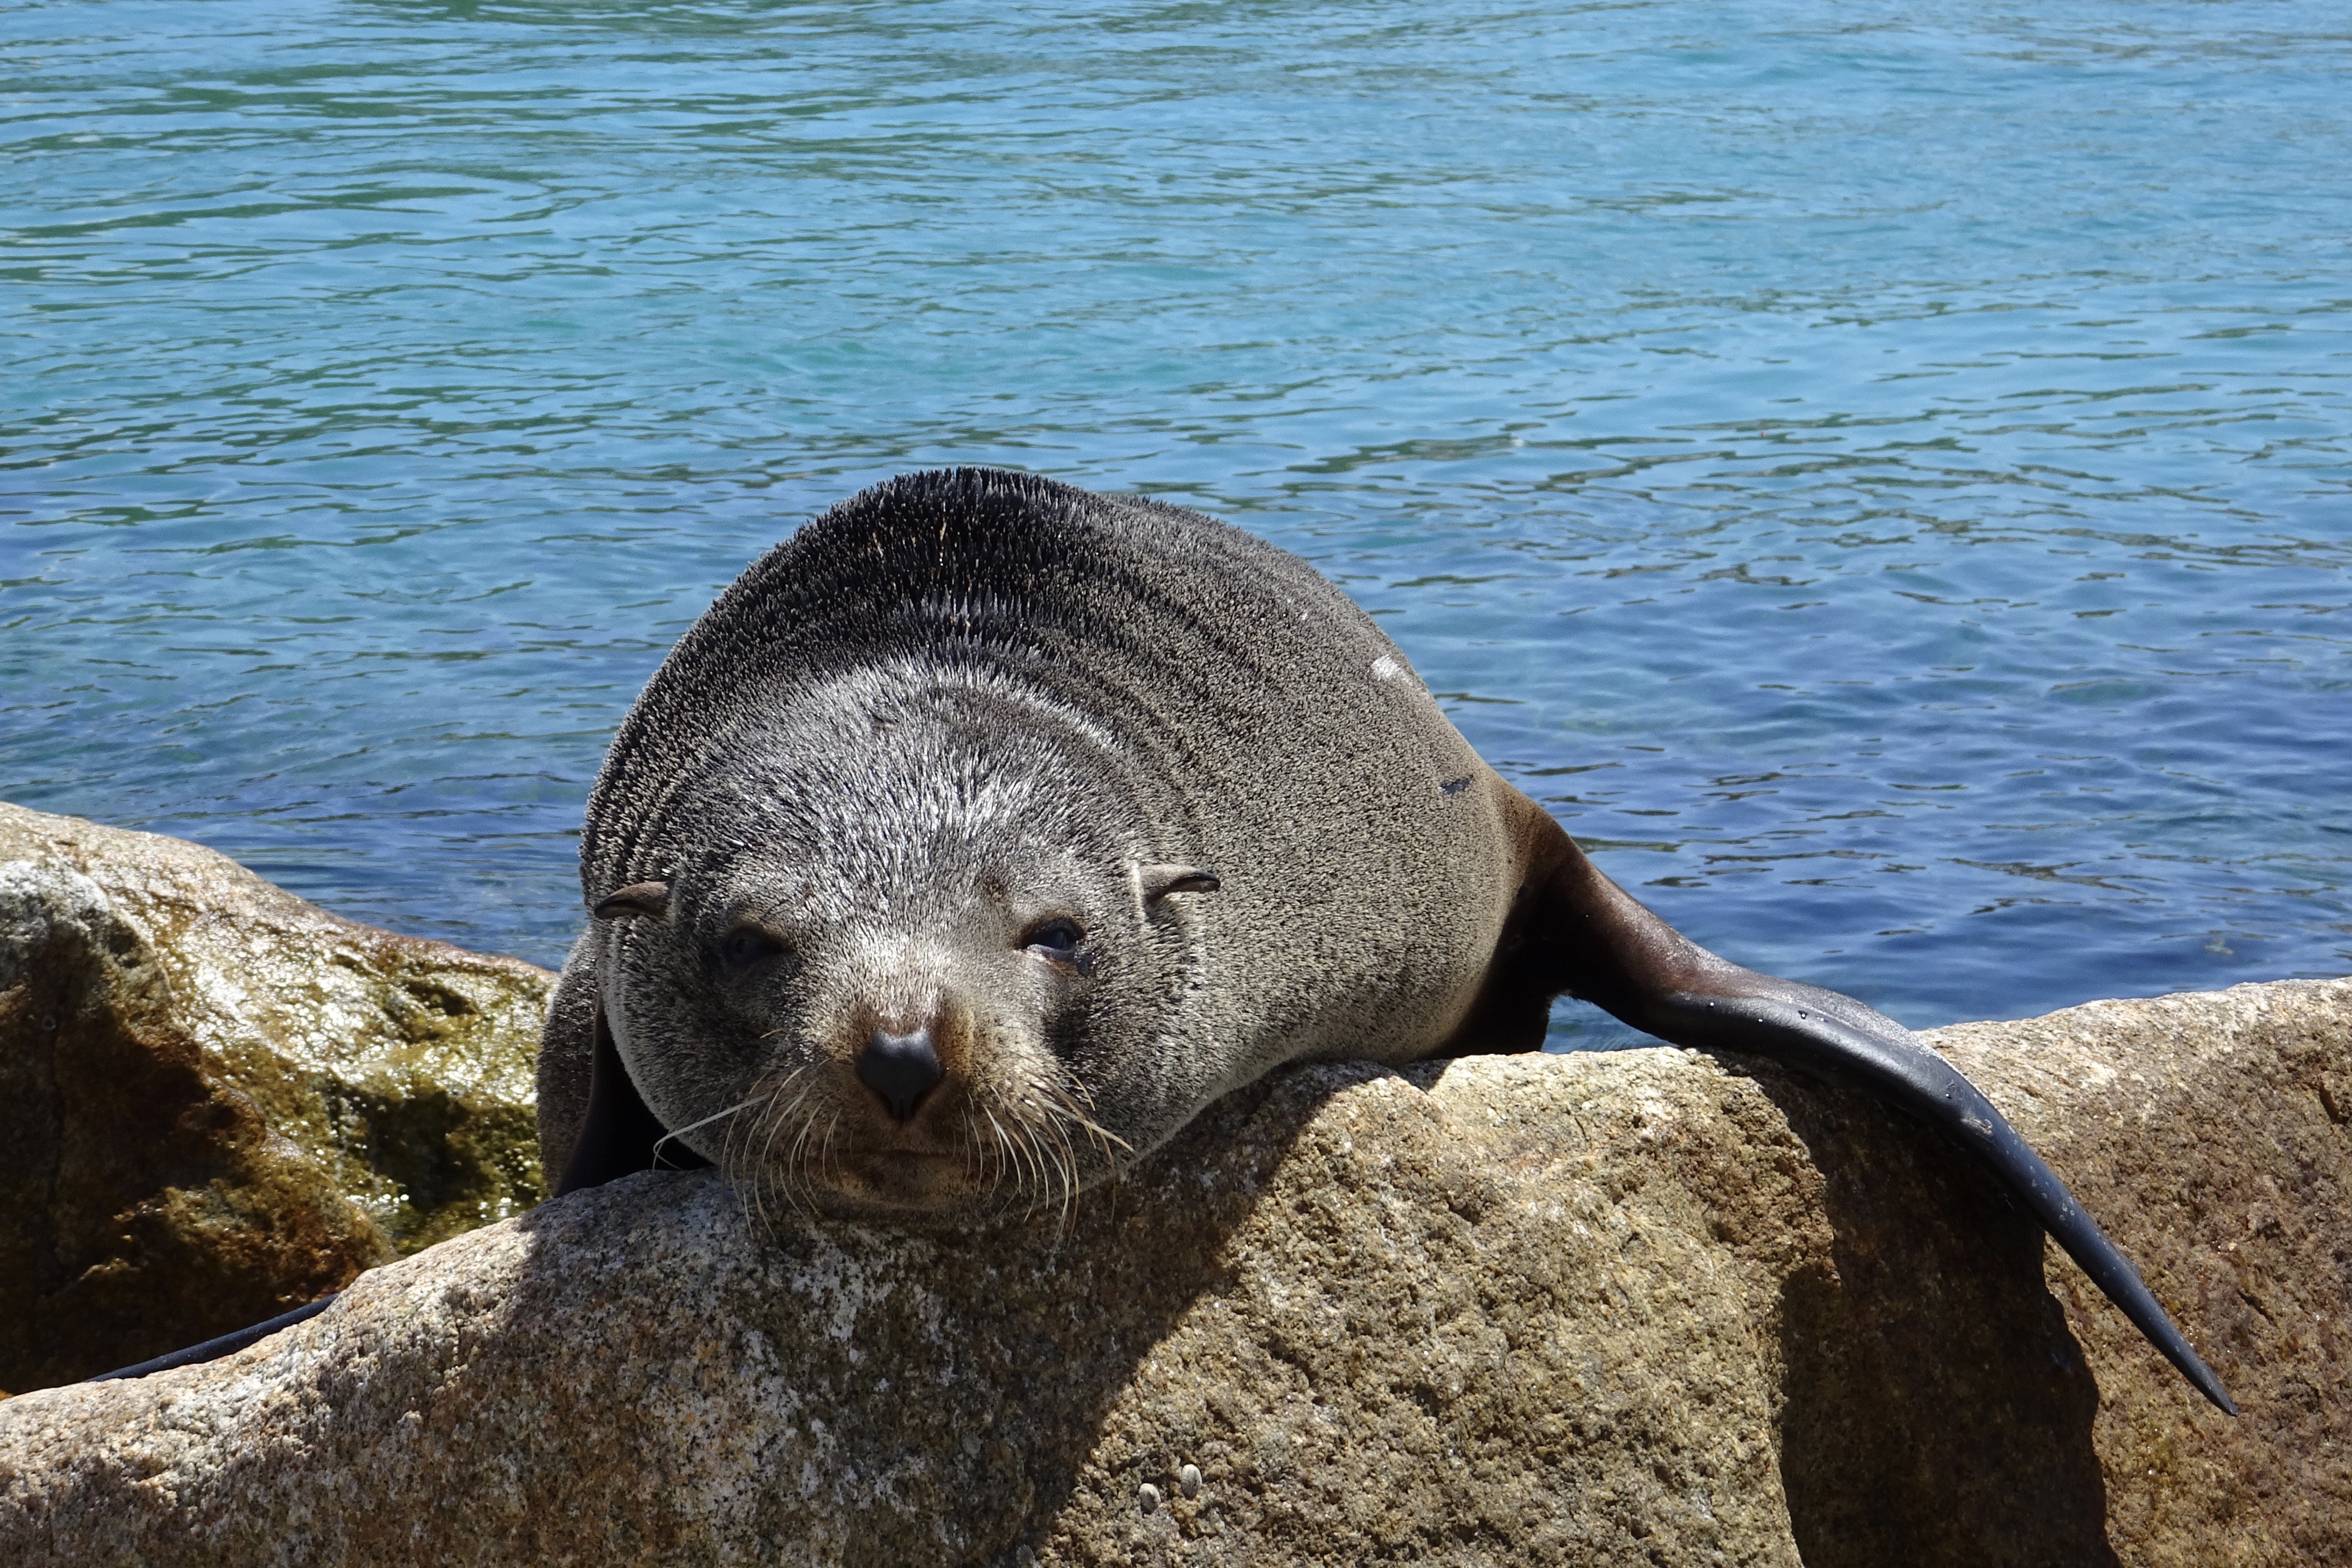 One lazy fur seal